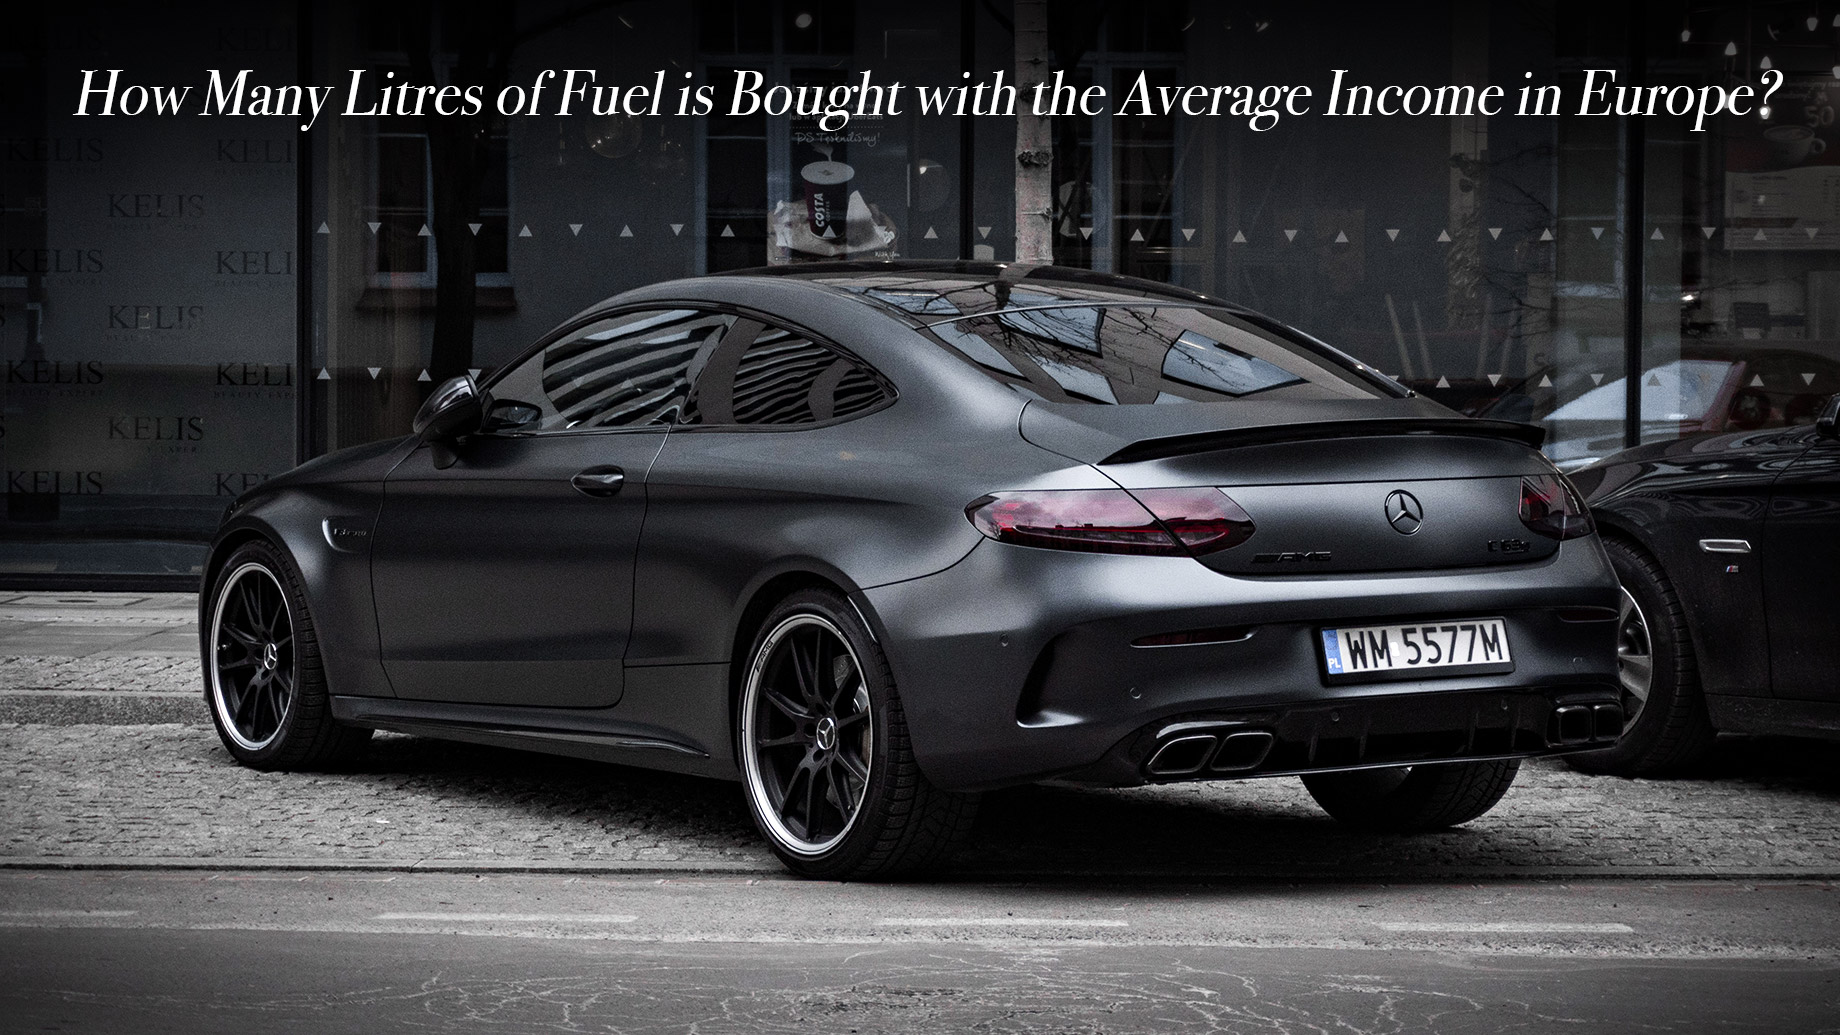 How Many Litres of Fuel is Bought with the Average Income in Europe?